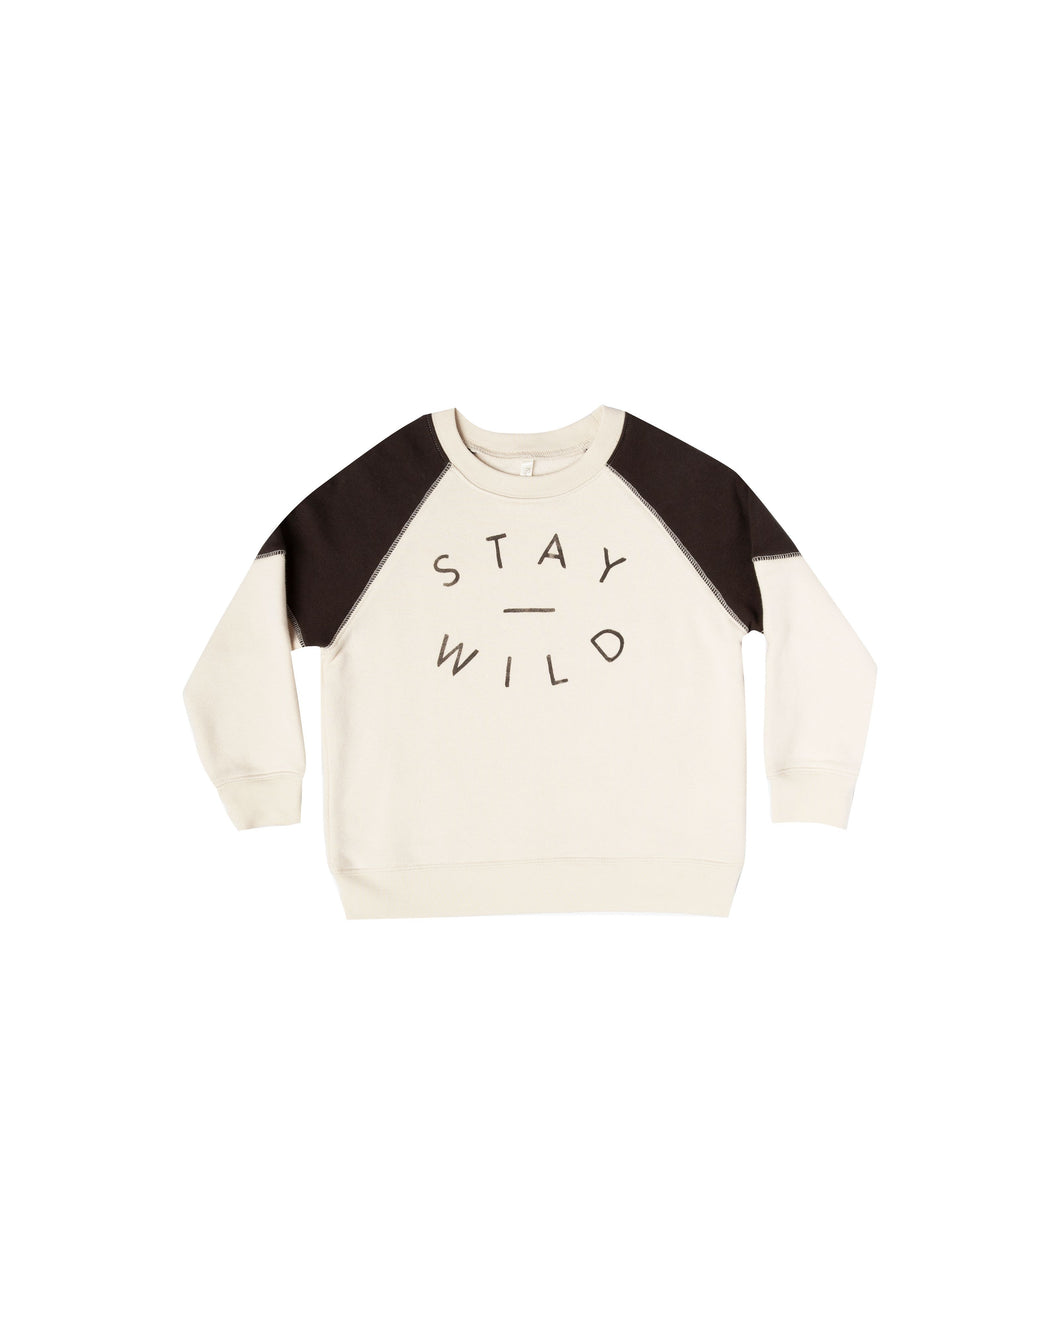 Stay Wild Raglan Sweatshirt - Posh Tots Children's Boutique